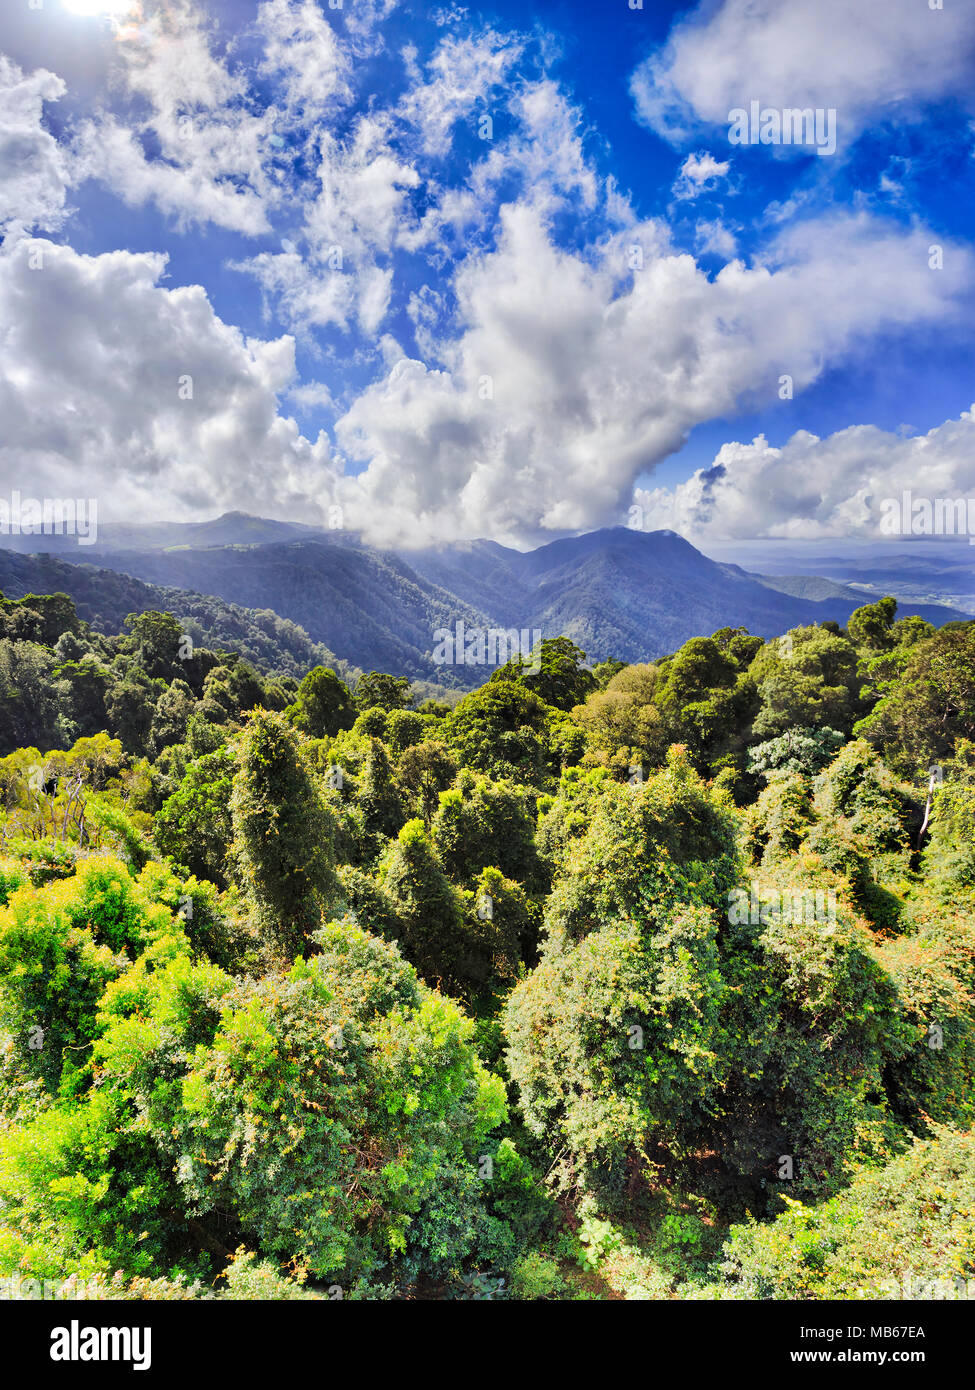 Dorrigo national park with ancient gondwana rainforest from main tourist lookout on a sunny day over canopy of evergreen gum-trees under blue sky. - Stock Image